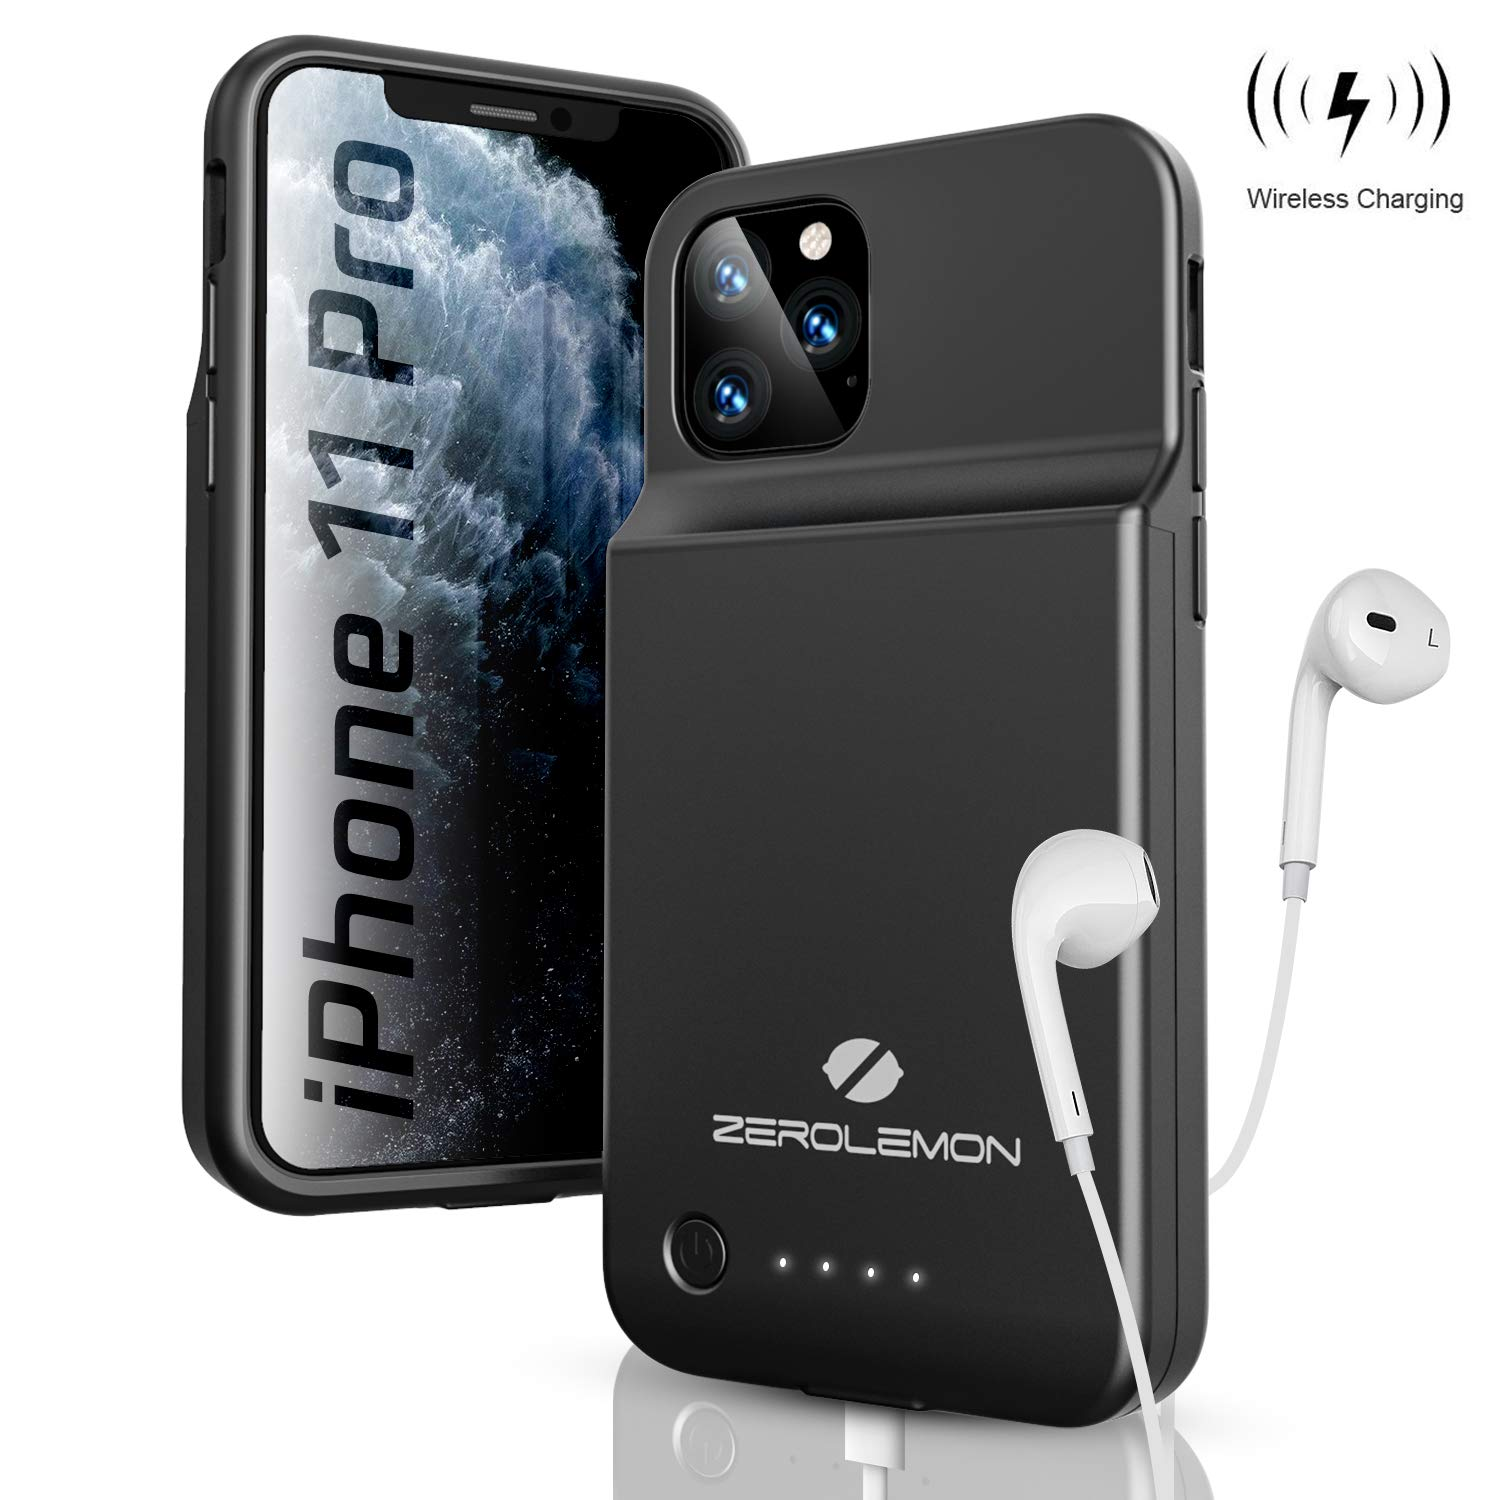 ZEROLEMON iPhone 11 Pro 5.8'' Battery Case, Wireless Charge + Headphone Support 4000mAh SlimJuicer Portable Protective Case(Compatible with iPhone 11 Pro/iPhone X/Xs) by ZEROLEMON